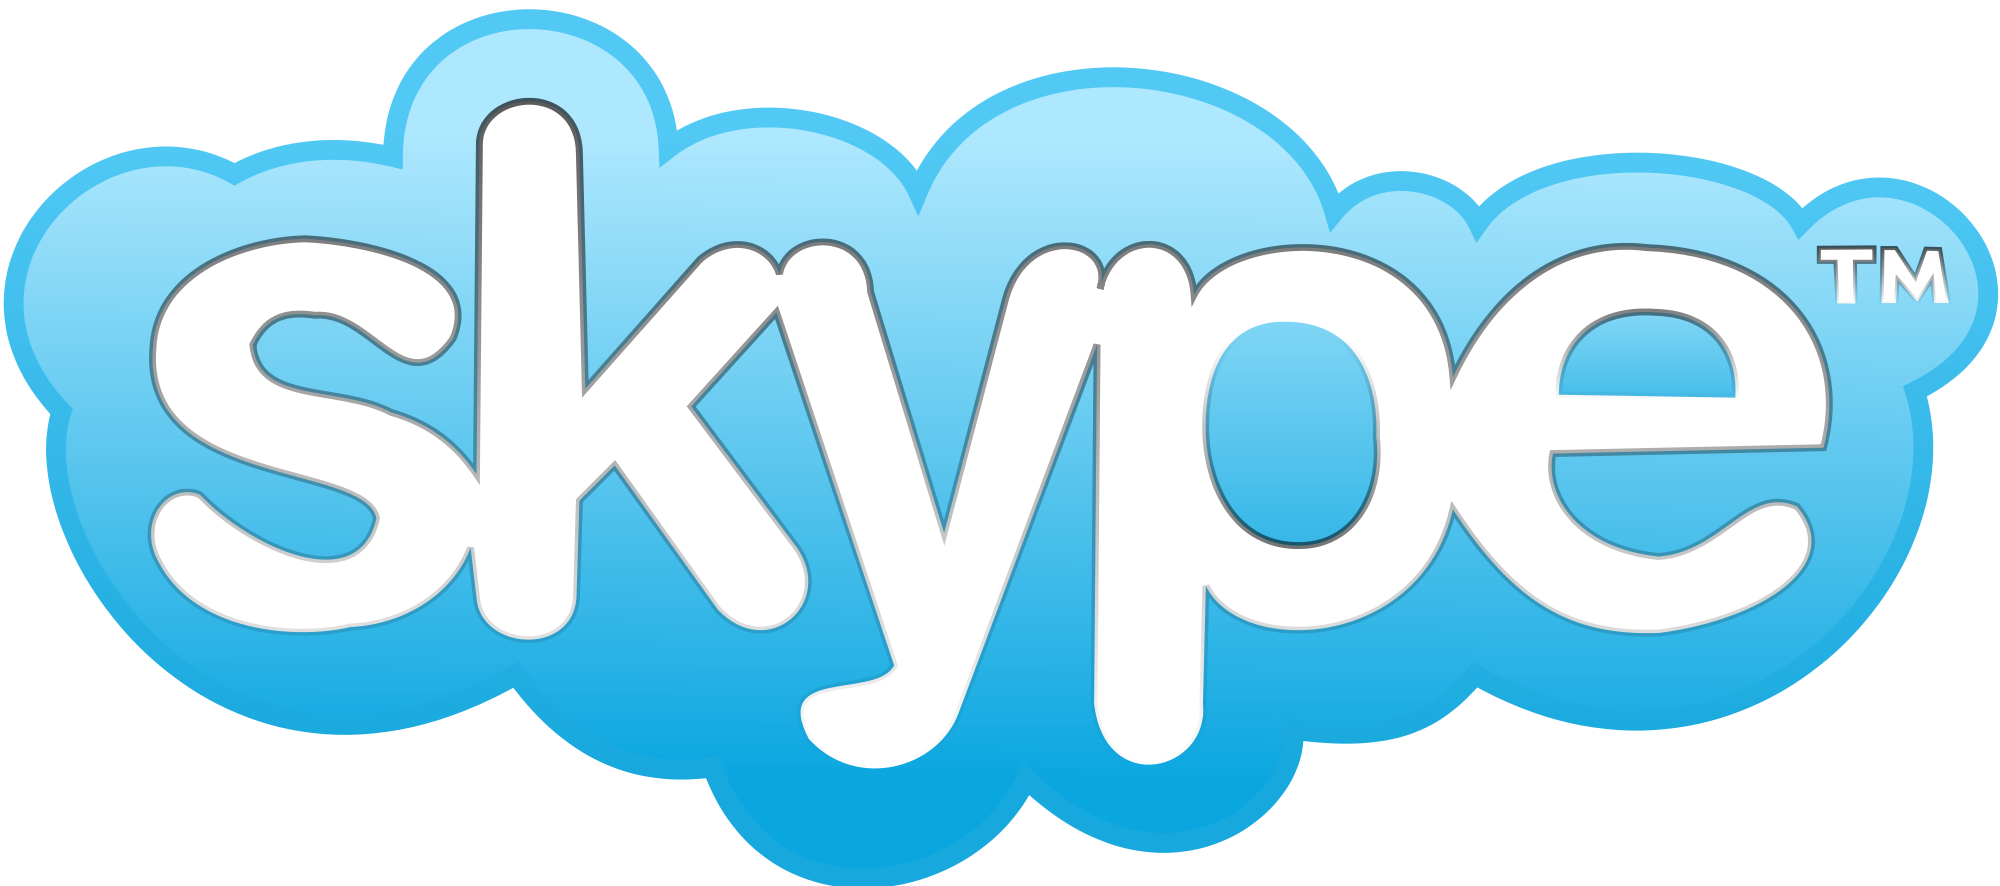 Language courses via Skype